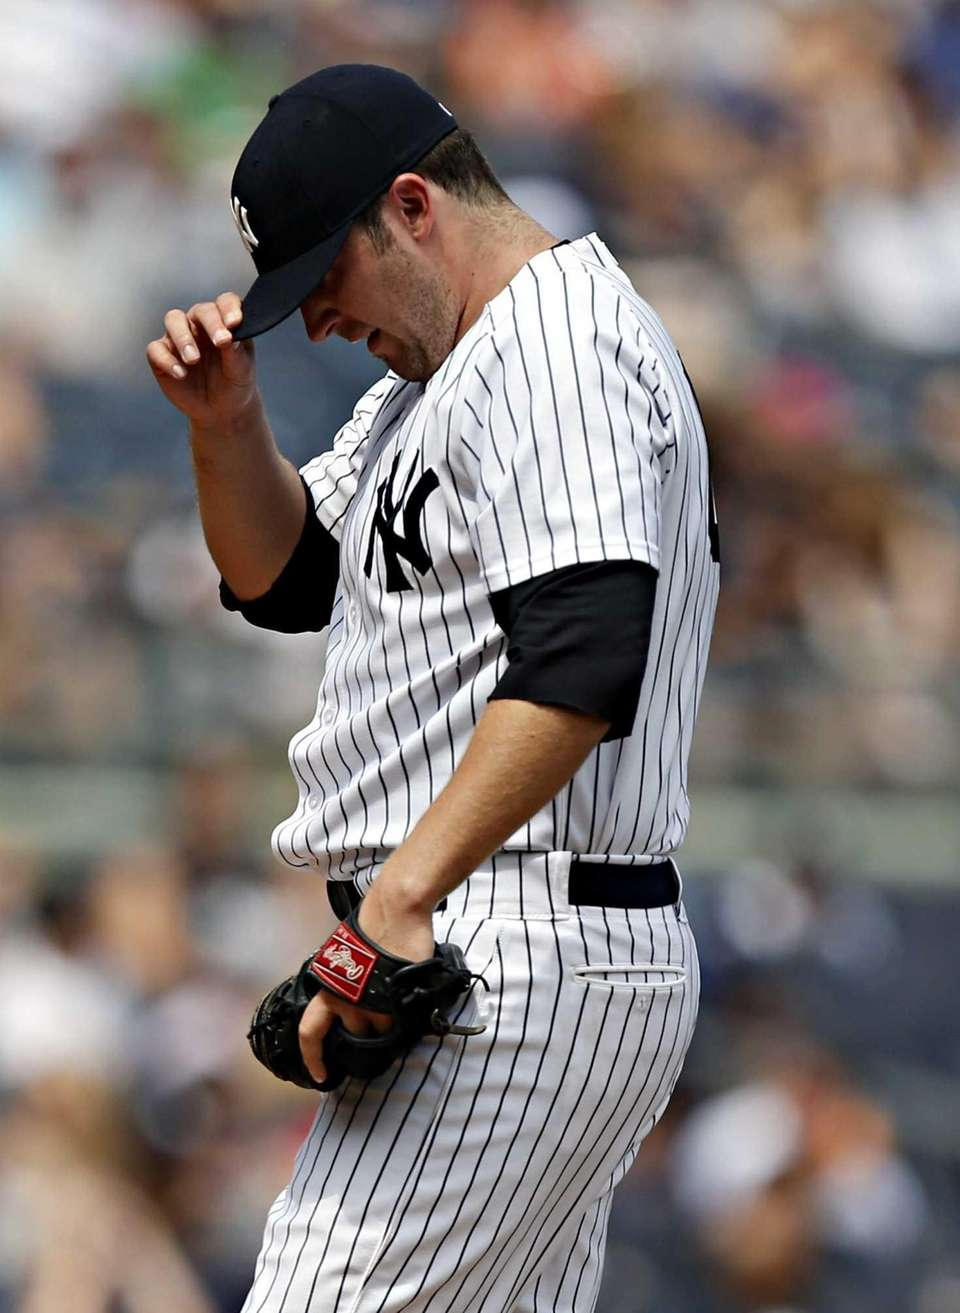 Yankees starting pitcher Phil Hughes takes a breather